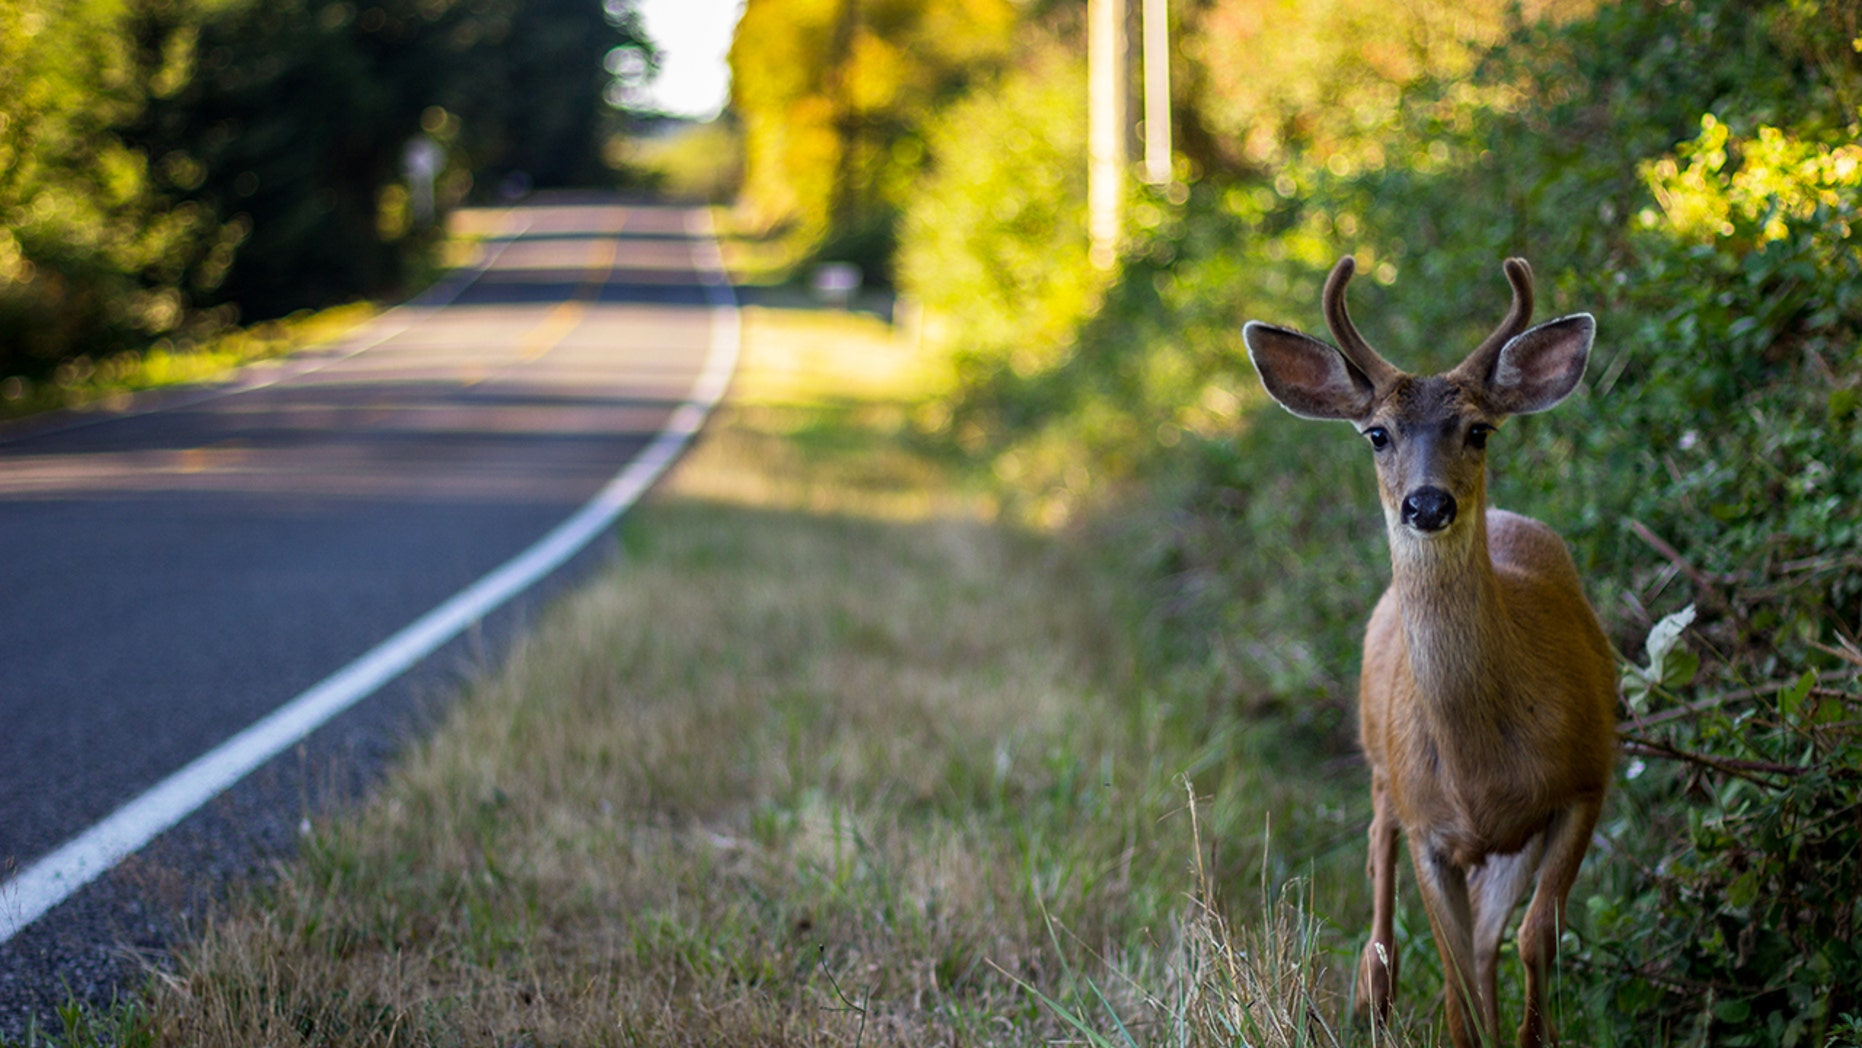 A marathon runner finished her race despite being smashed into by a deer three miles before the finish.